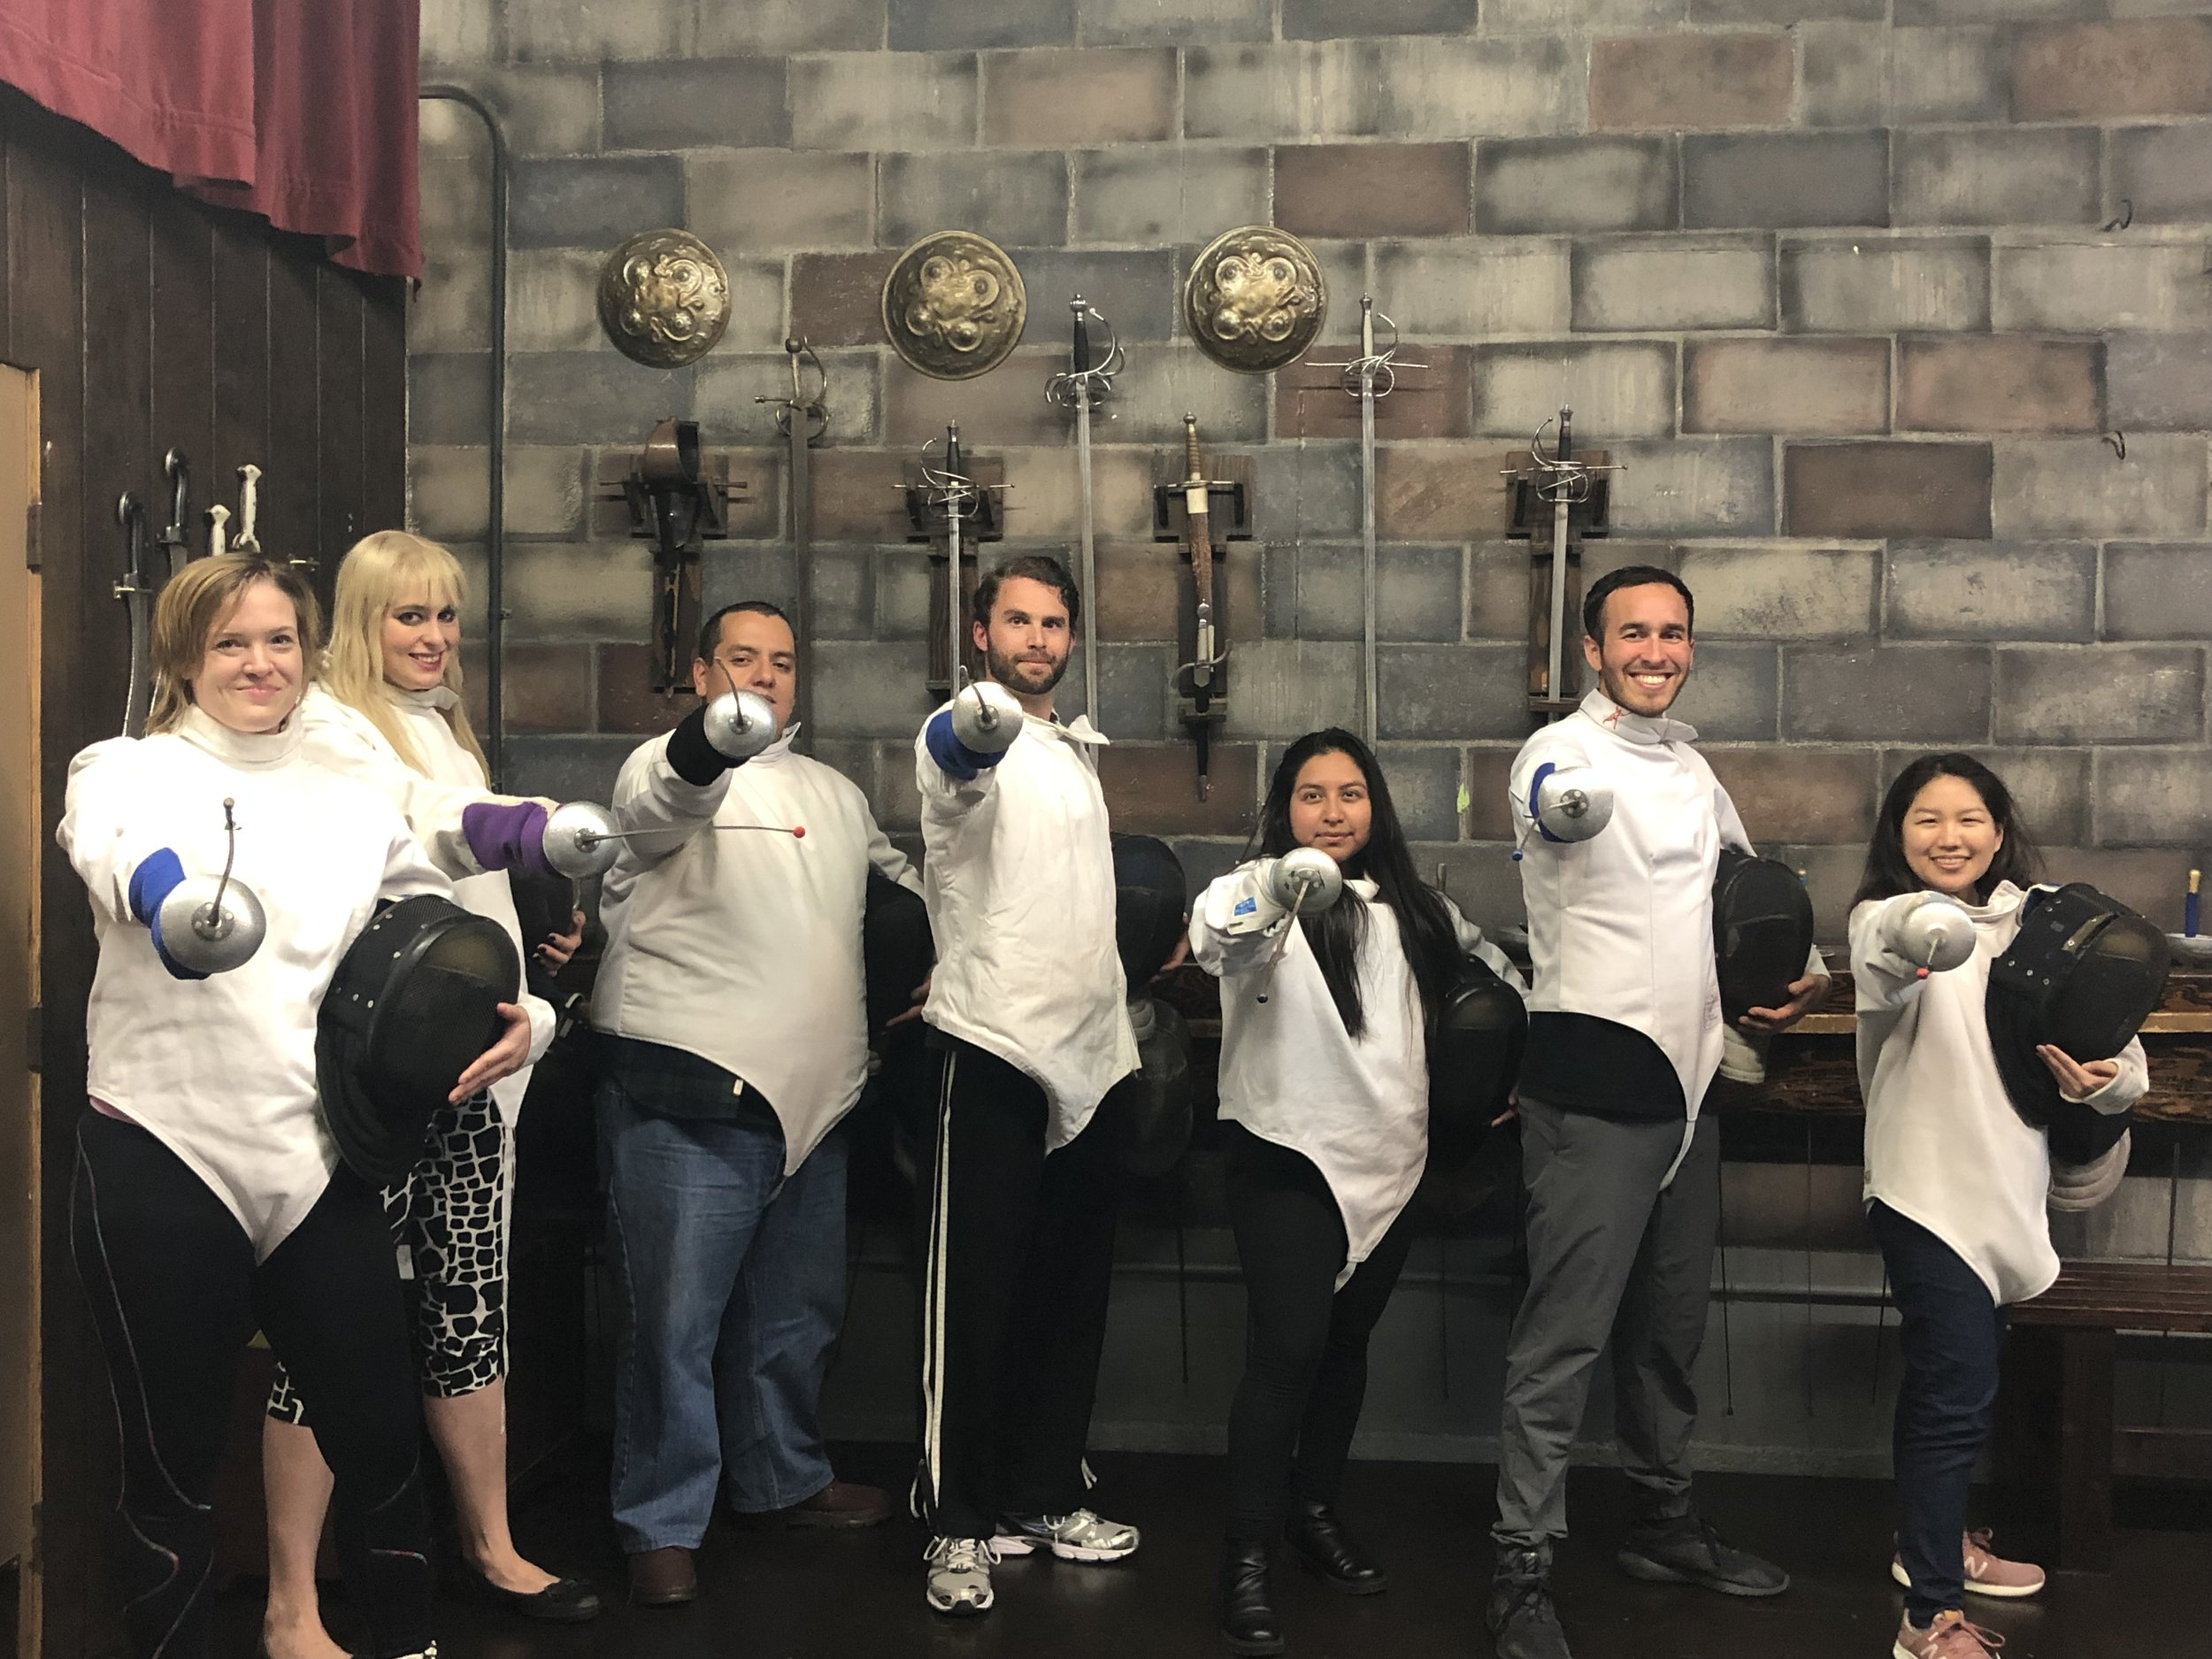 Fencing training at Swordplay LA is the perfect team building activity.